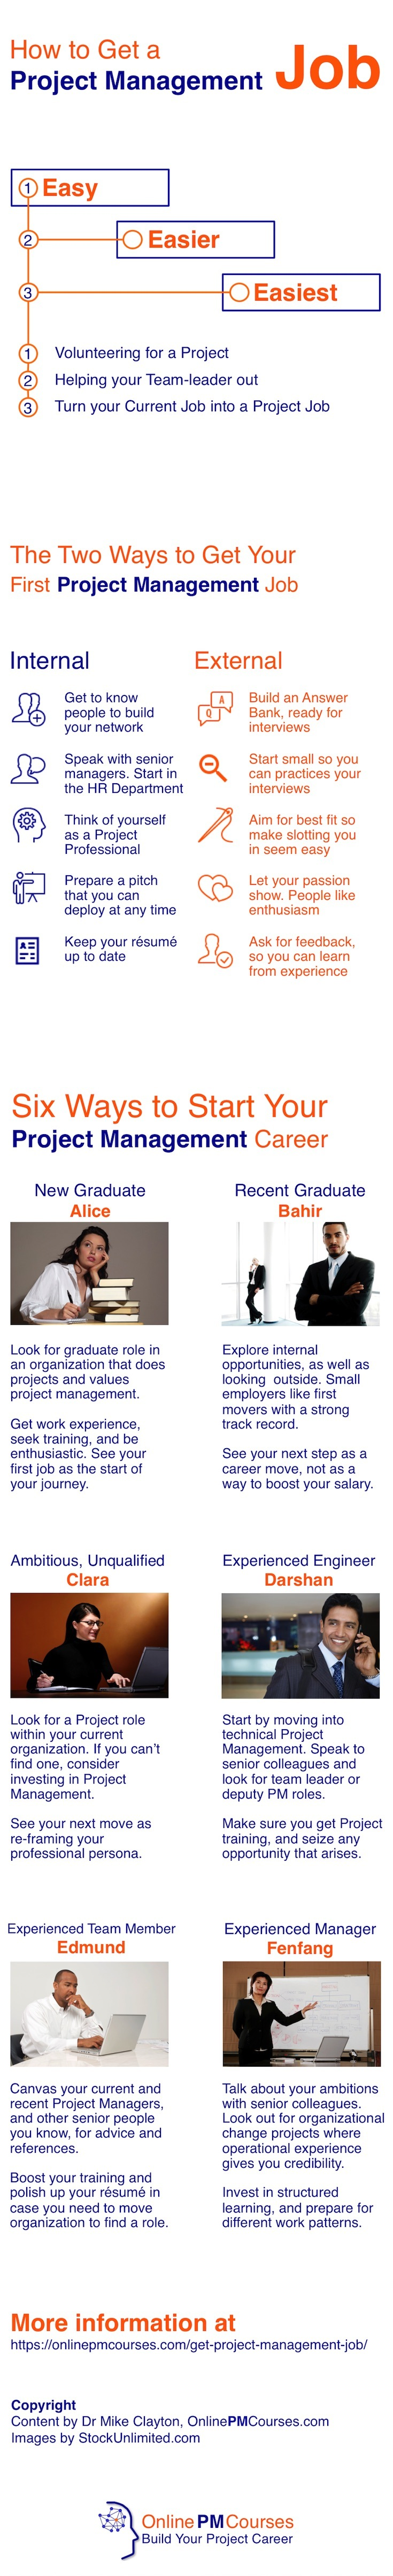 How to Get a Project Management Job - Infographic